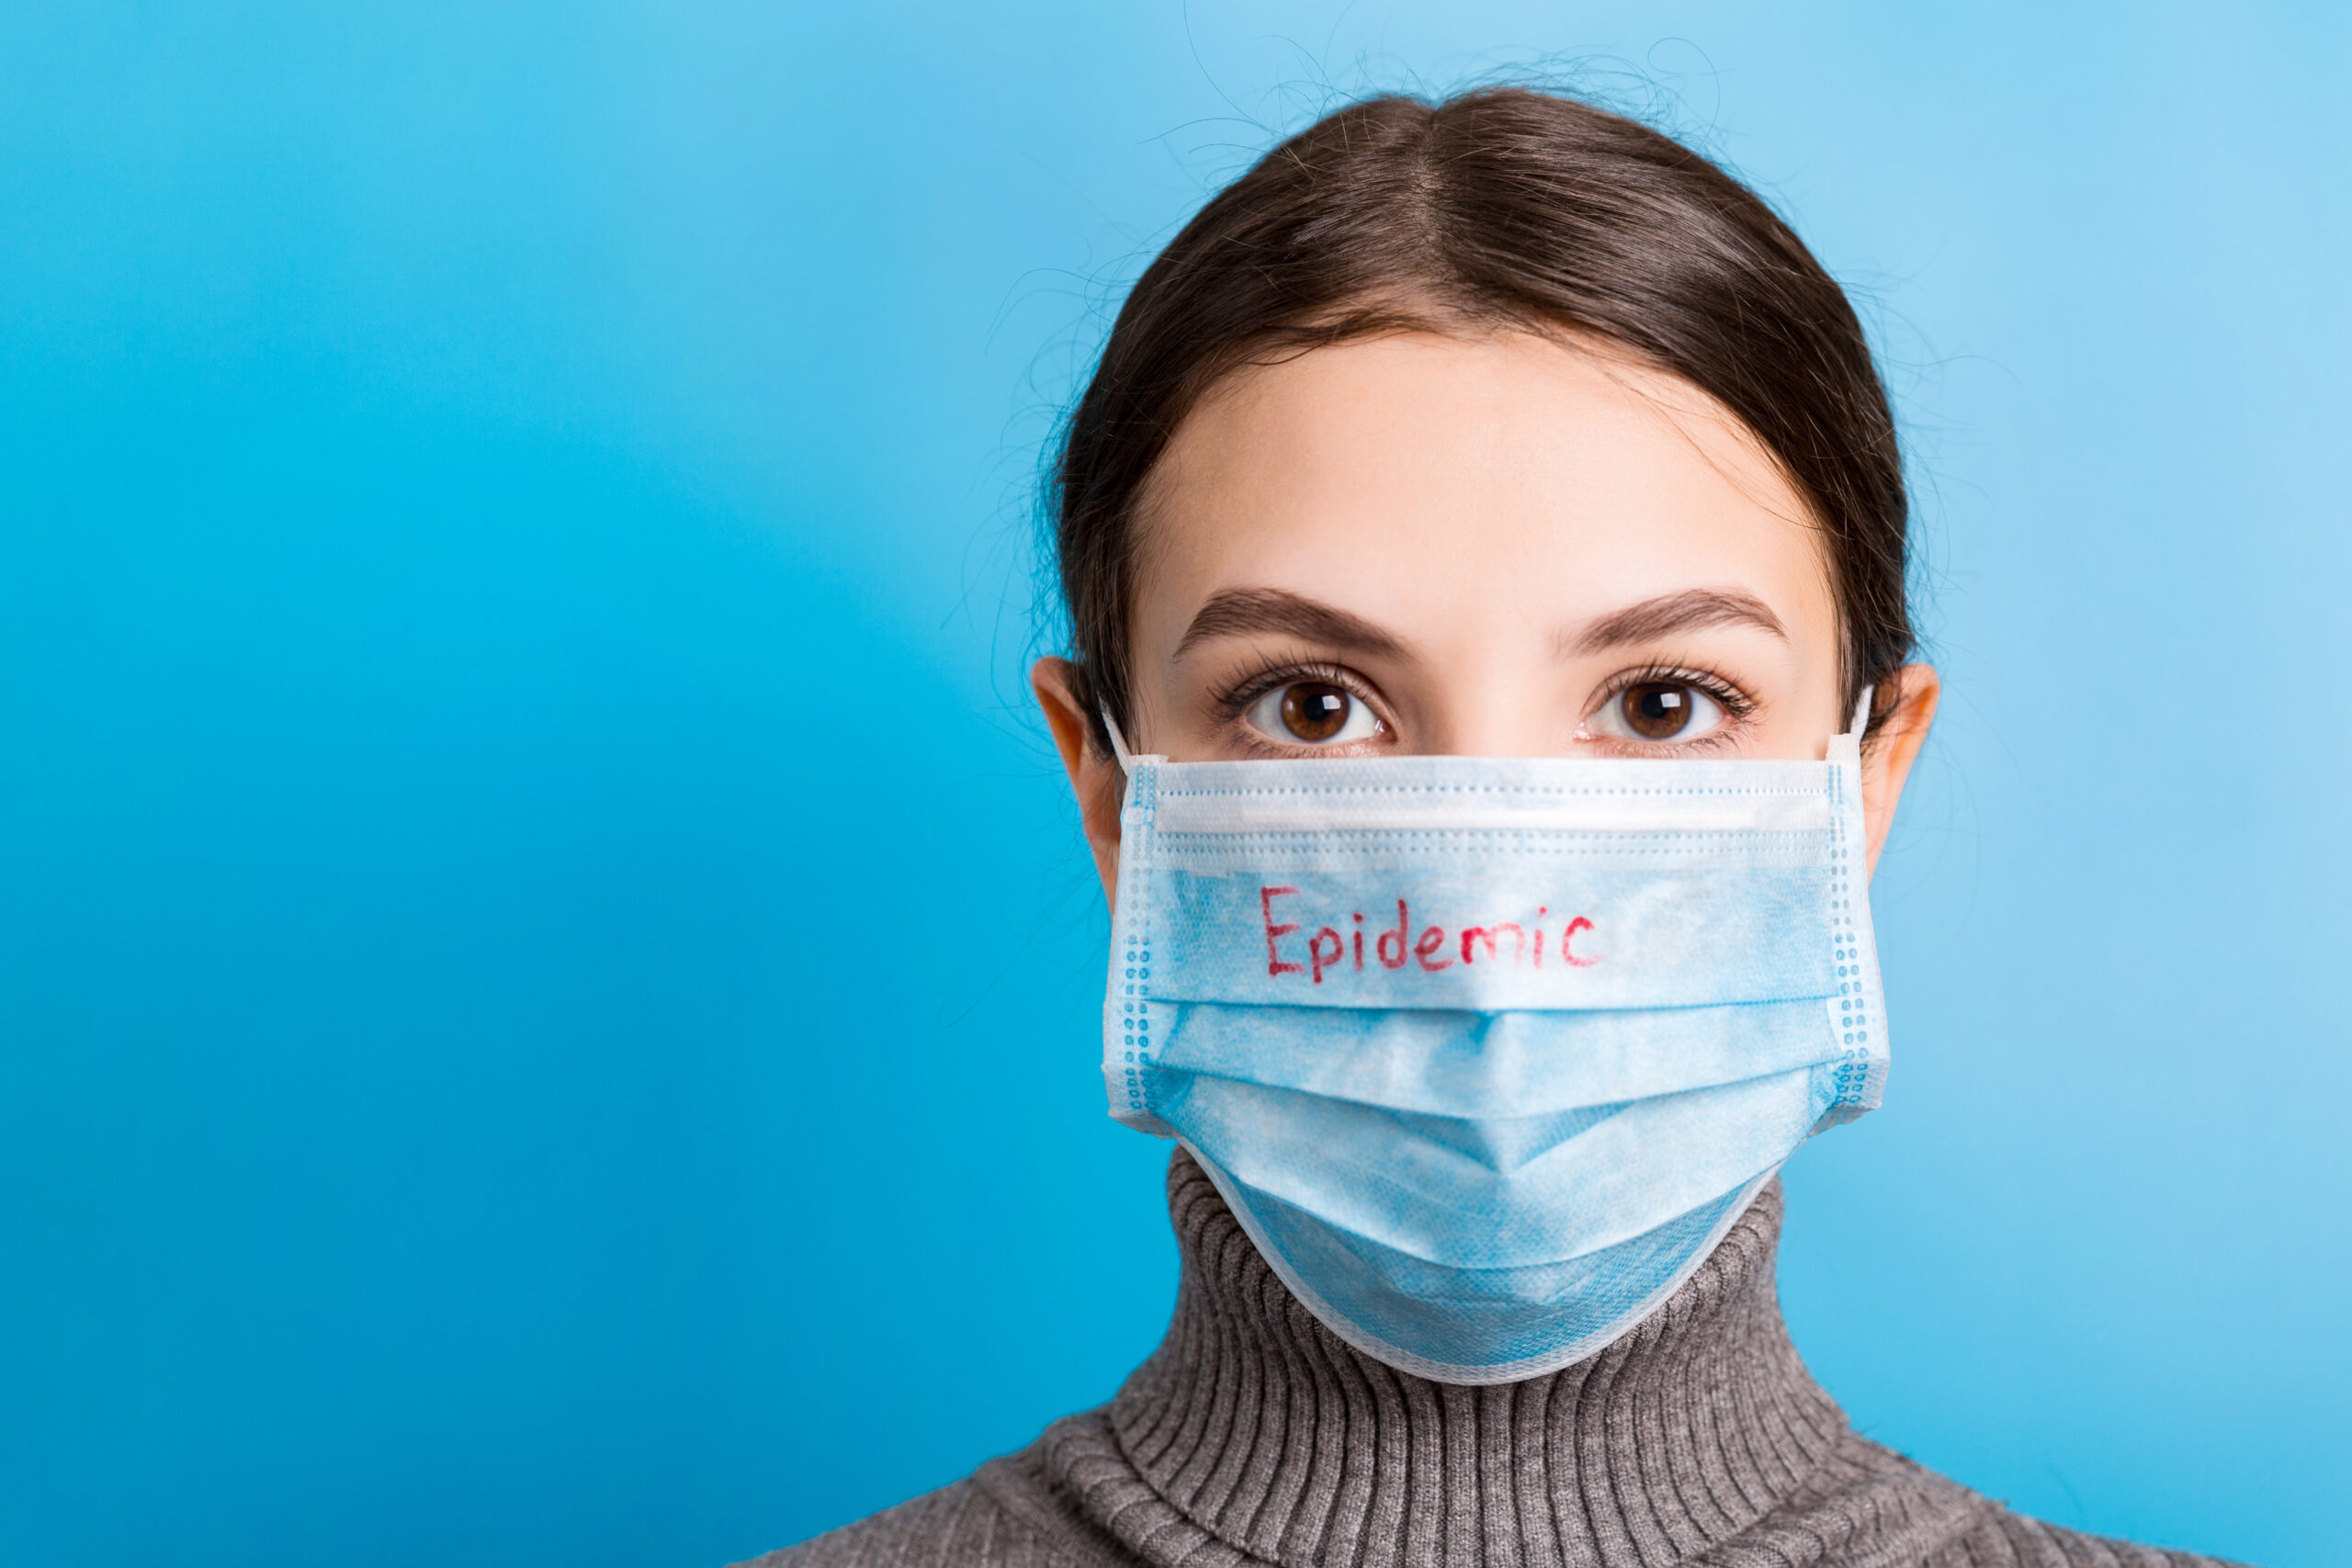 Portrait of young woman wearing medical mask with epidemic word at blue background. Protect your health. Coronavirus concept